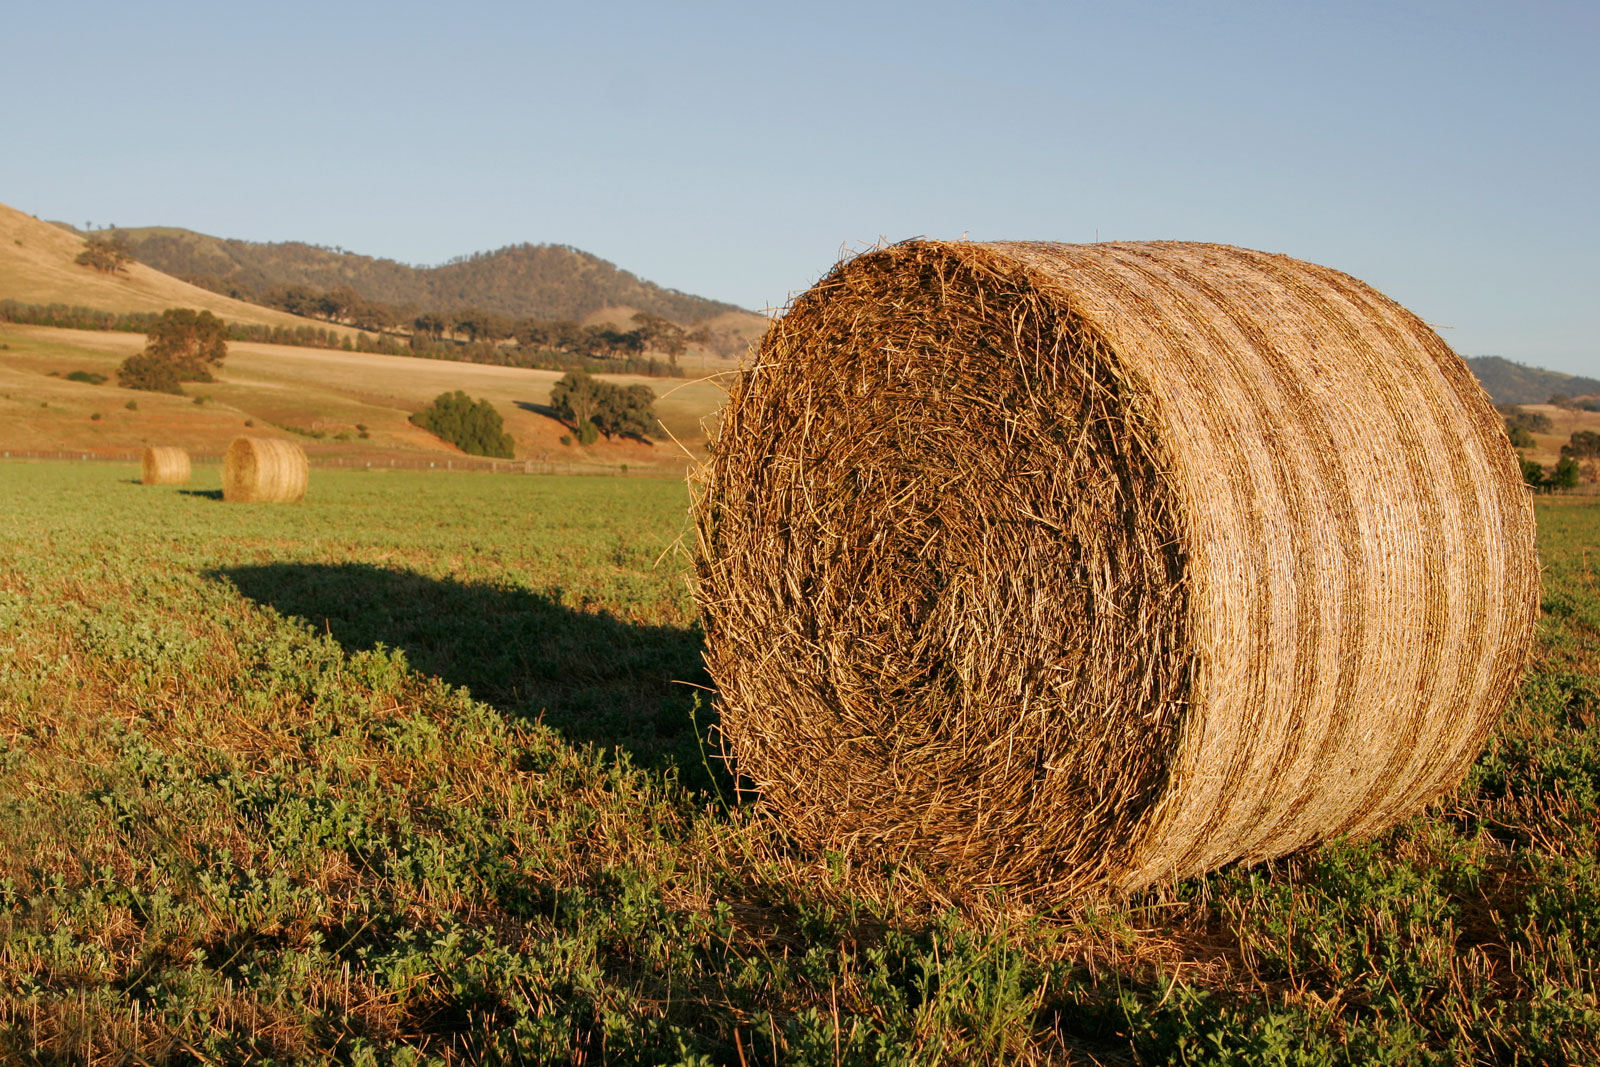 Round_hay_bale_at_dawn02.jpg